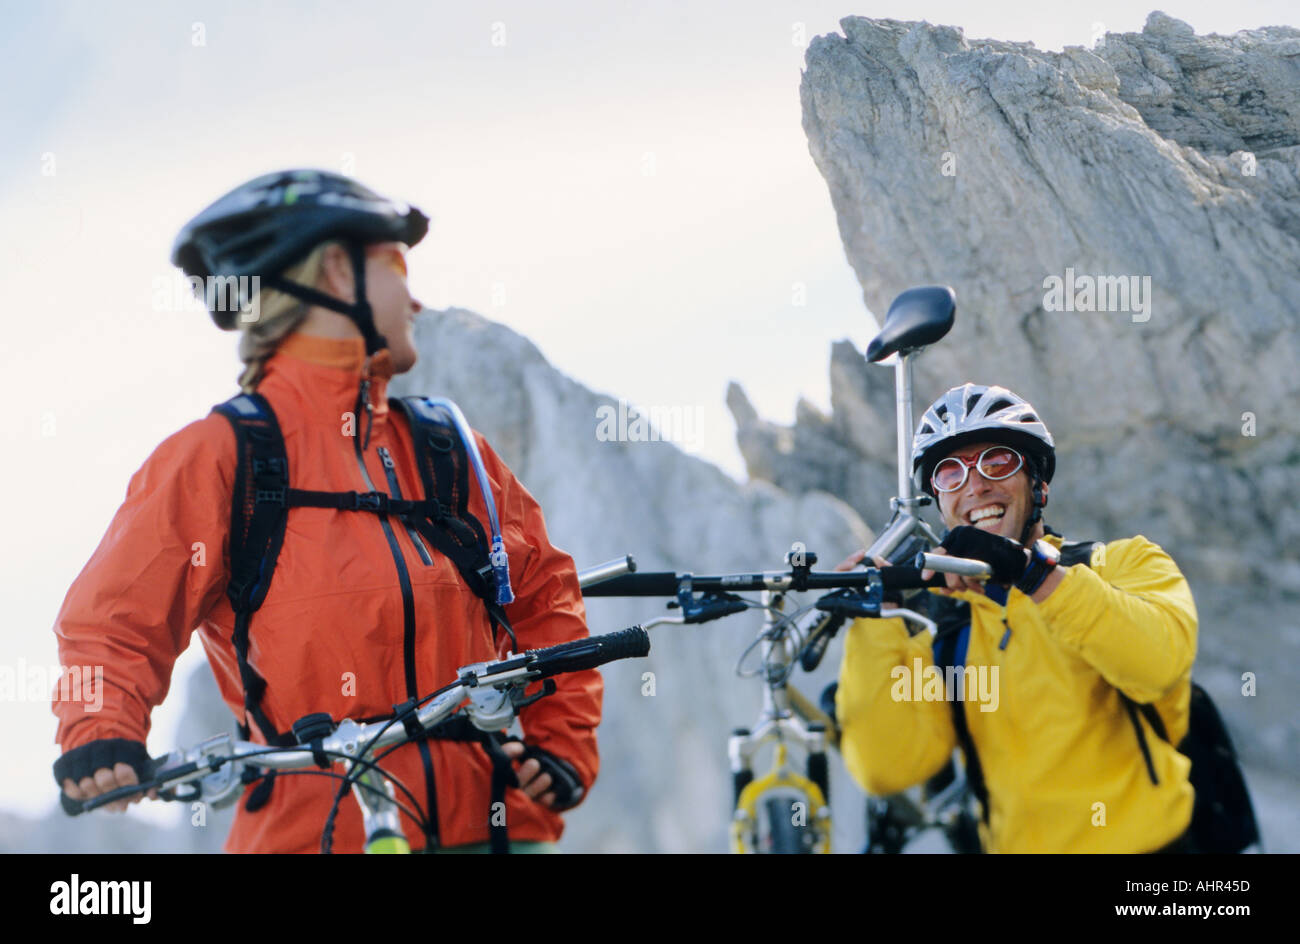 Mountain bikers face to face - Stock Image